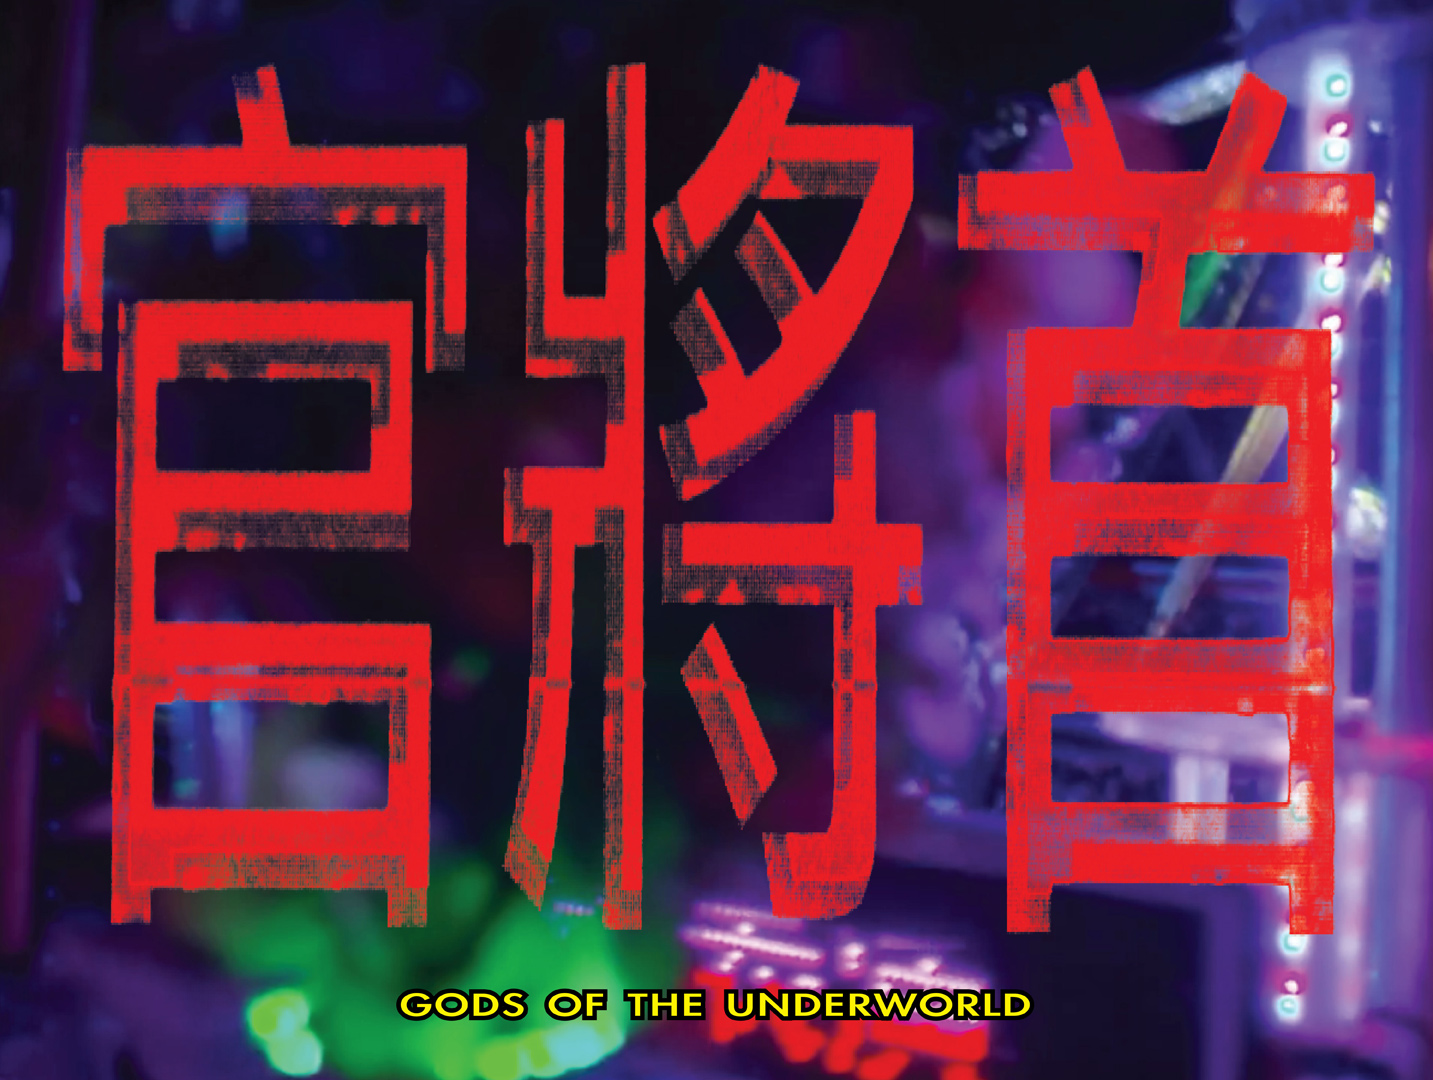 Ron Wan: Nowness presents Gods of the Underworld by Au Matt and Lin Xiu Wei featuring Shian Zhao, Kenny Kuo, Liren Shin and Filantropi Lu